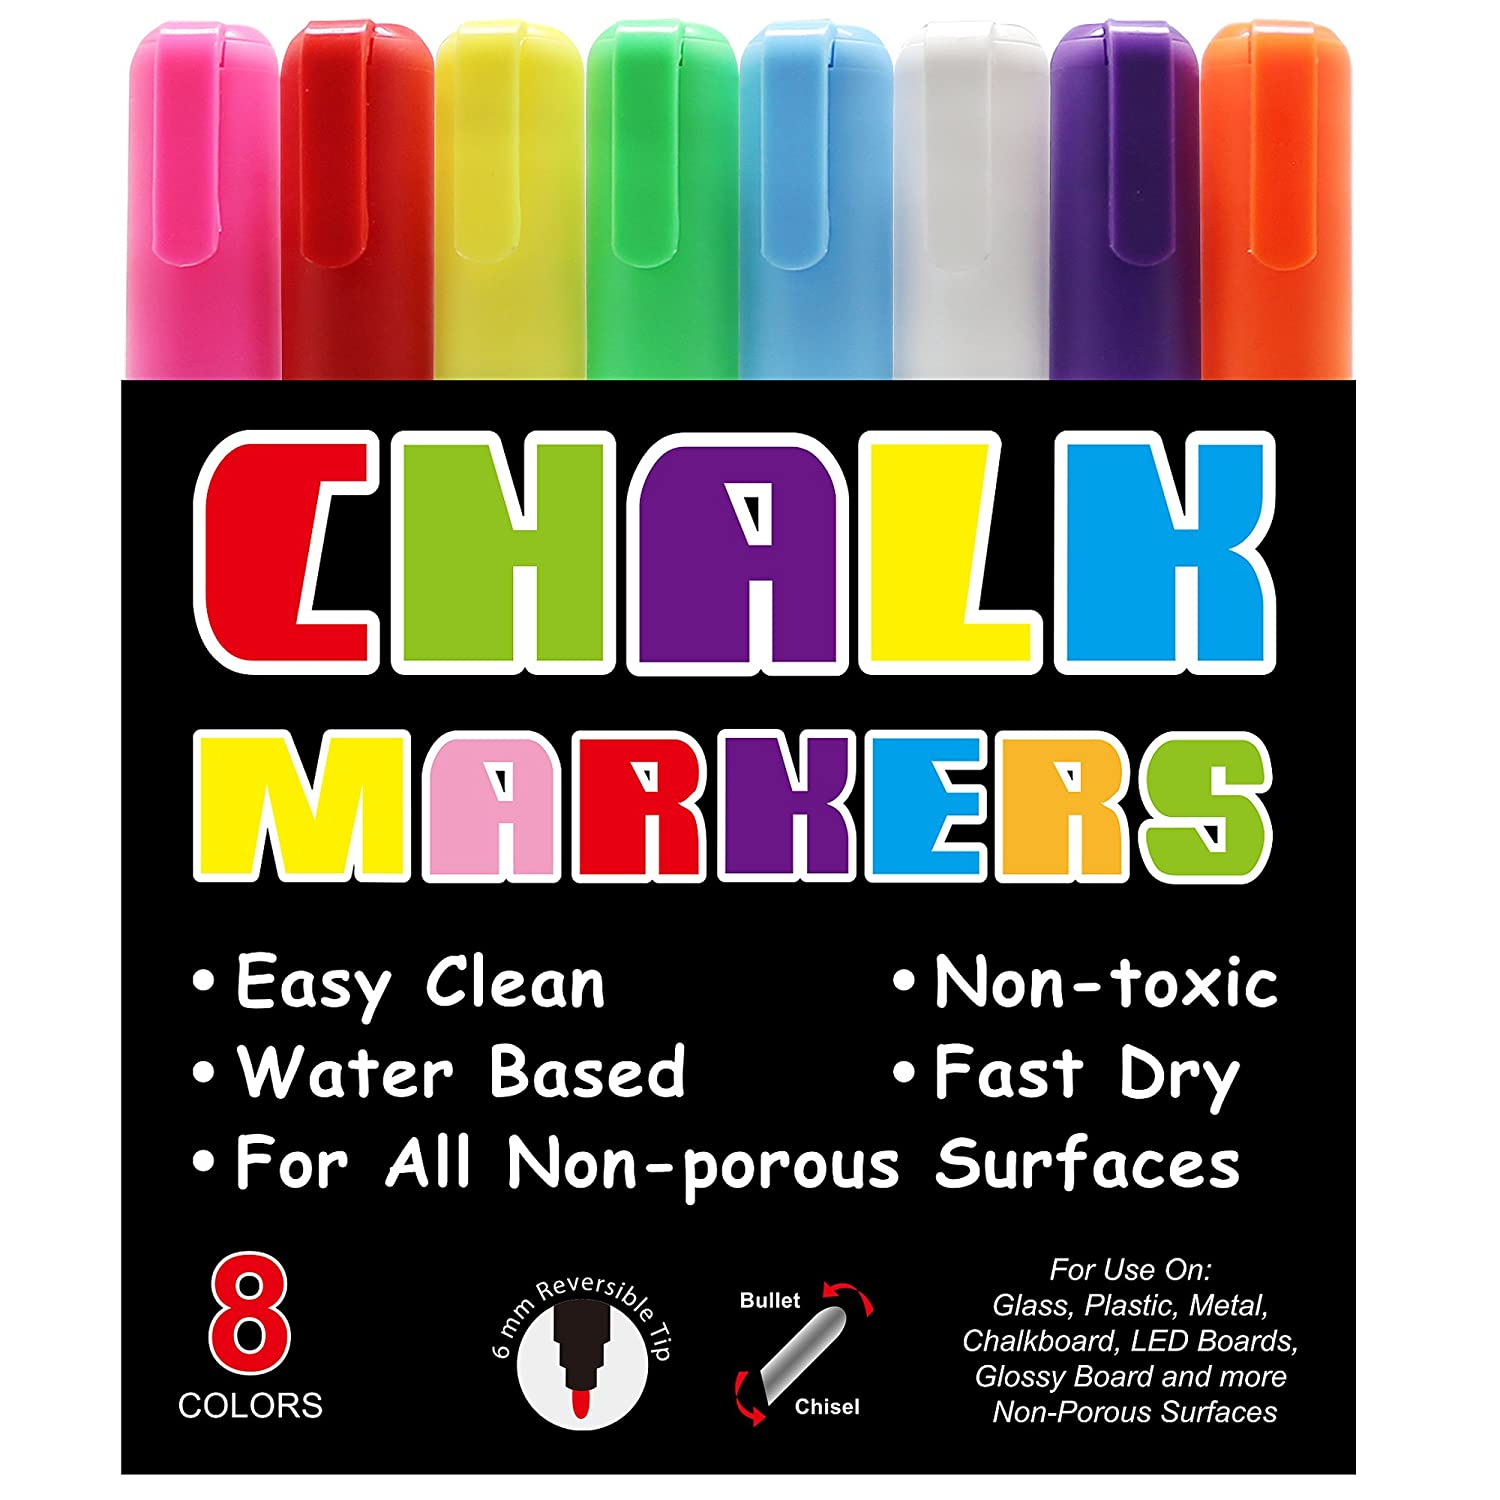 ParKoo Chalk Markers for Chalkboard - 8 Neon Color Pack with Free 24 Chalkboard Labels and 4 Reversible Tips - Non Toxic Wet Erase Chalkboard Window Glass Pen